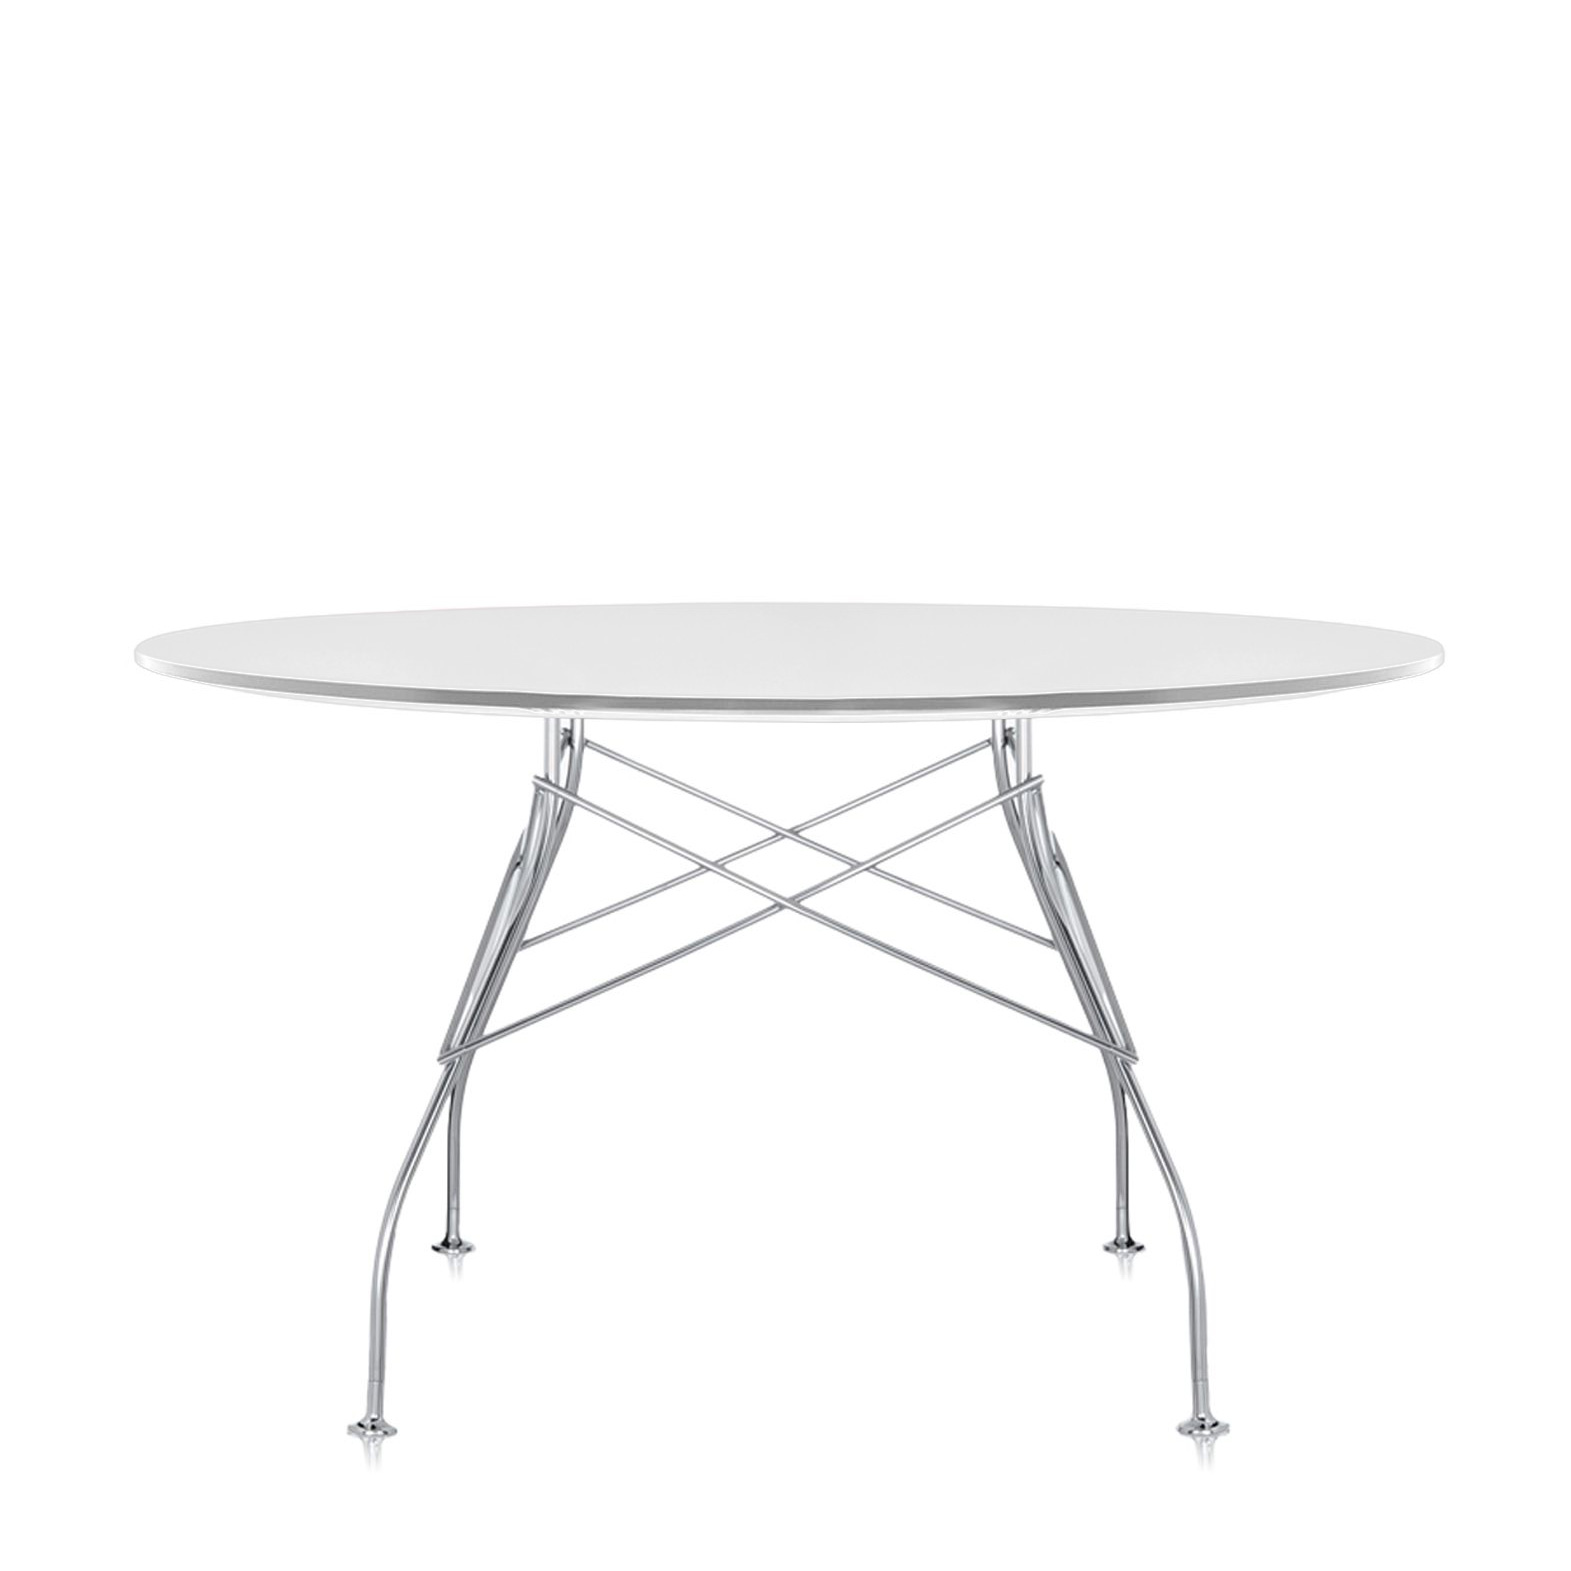 Kartell Round Table Kartell Glossy Round Table Versatile Table For The Home Office